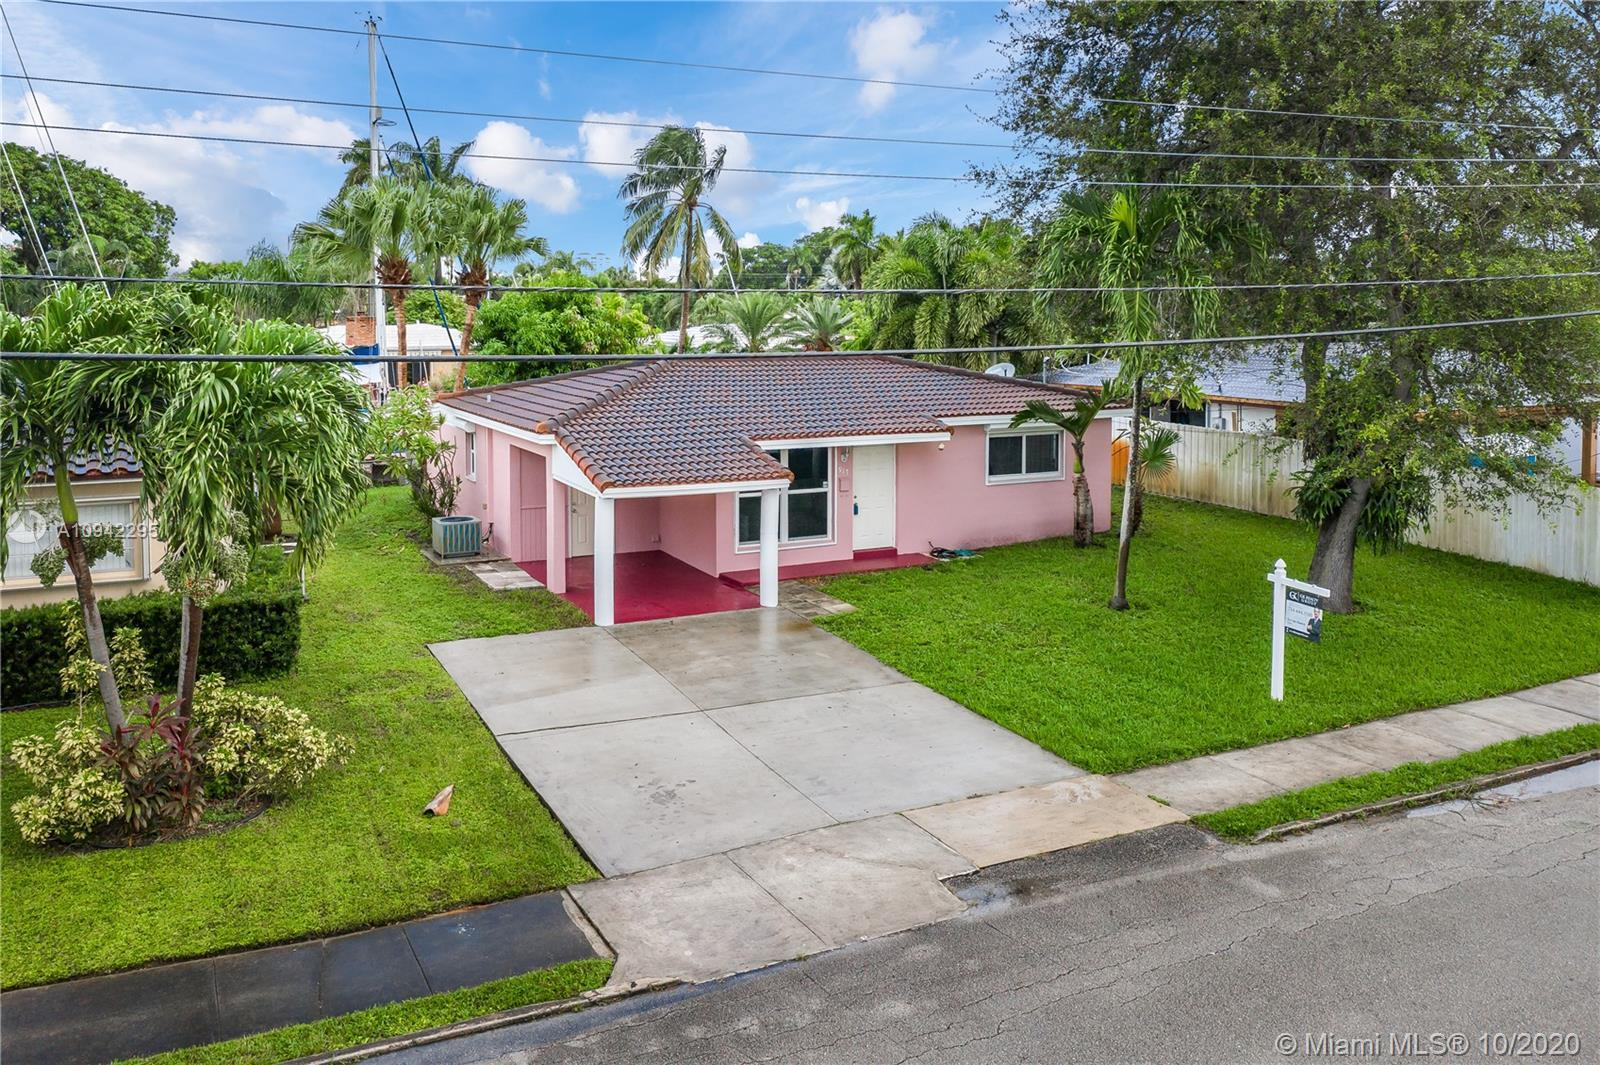 Beautifully waterfront home in Fort Lauderdale with Ocean Access & No Fixed Bridges. This single fam